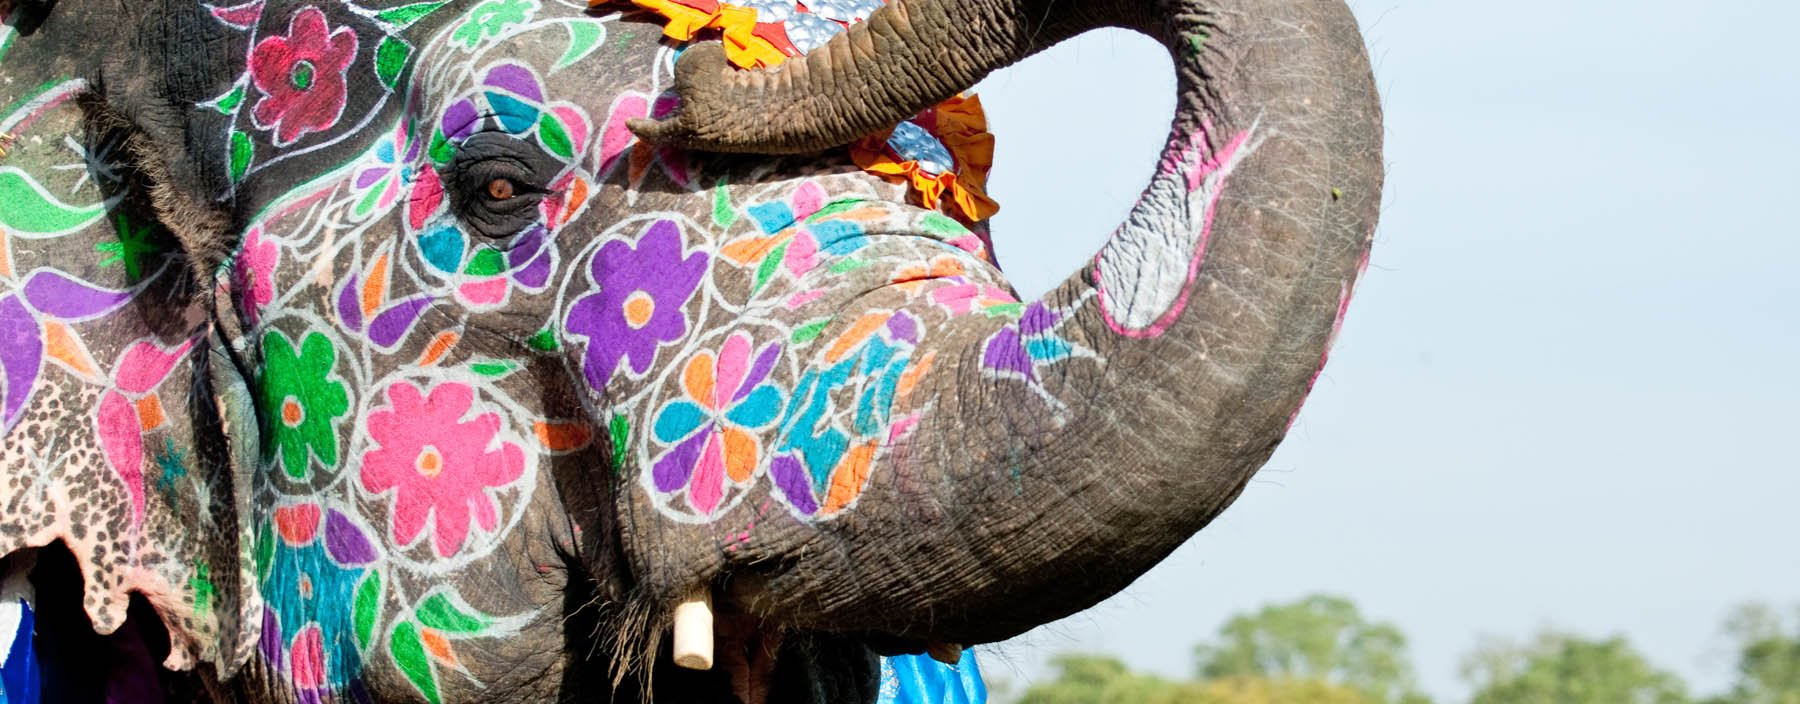 in, jaipur, painted elephant at the elephant festival.jpg